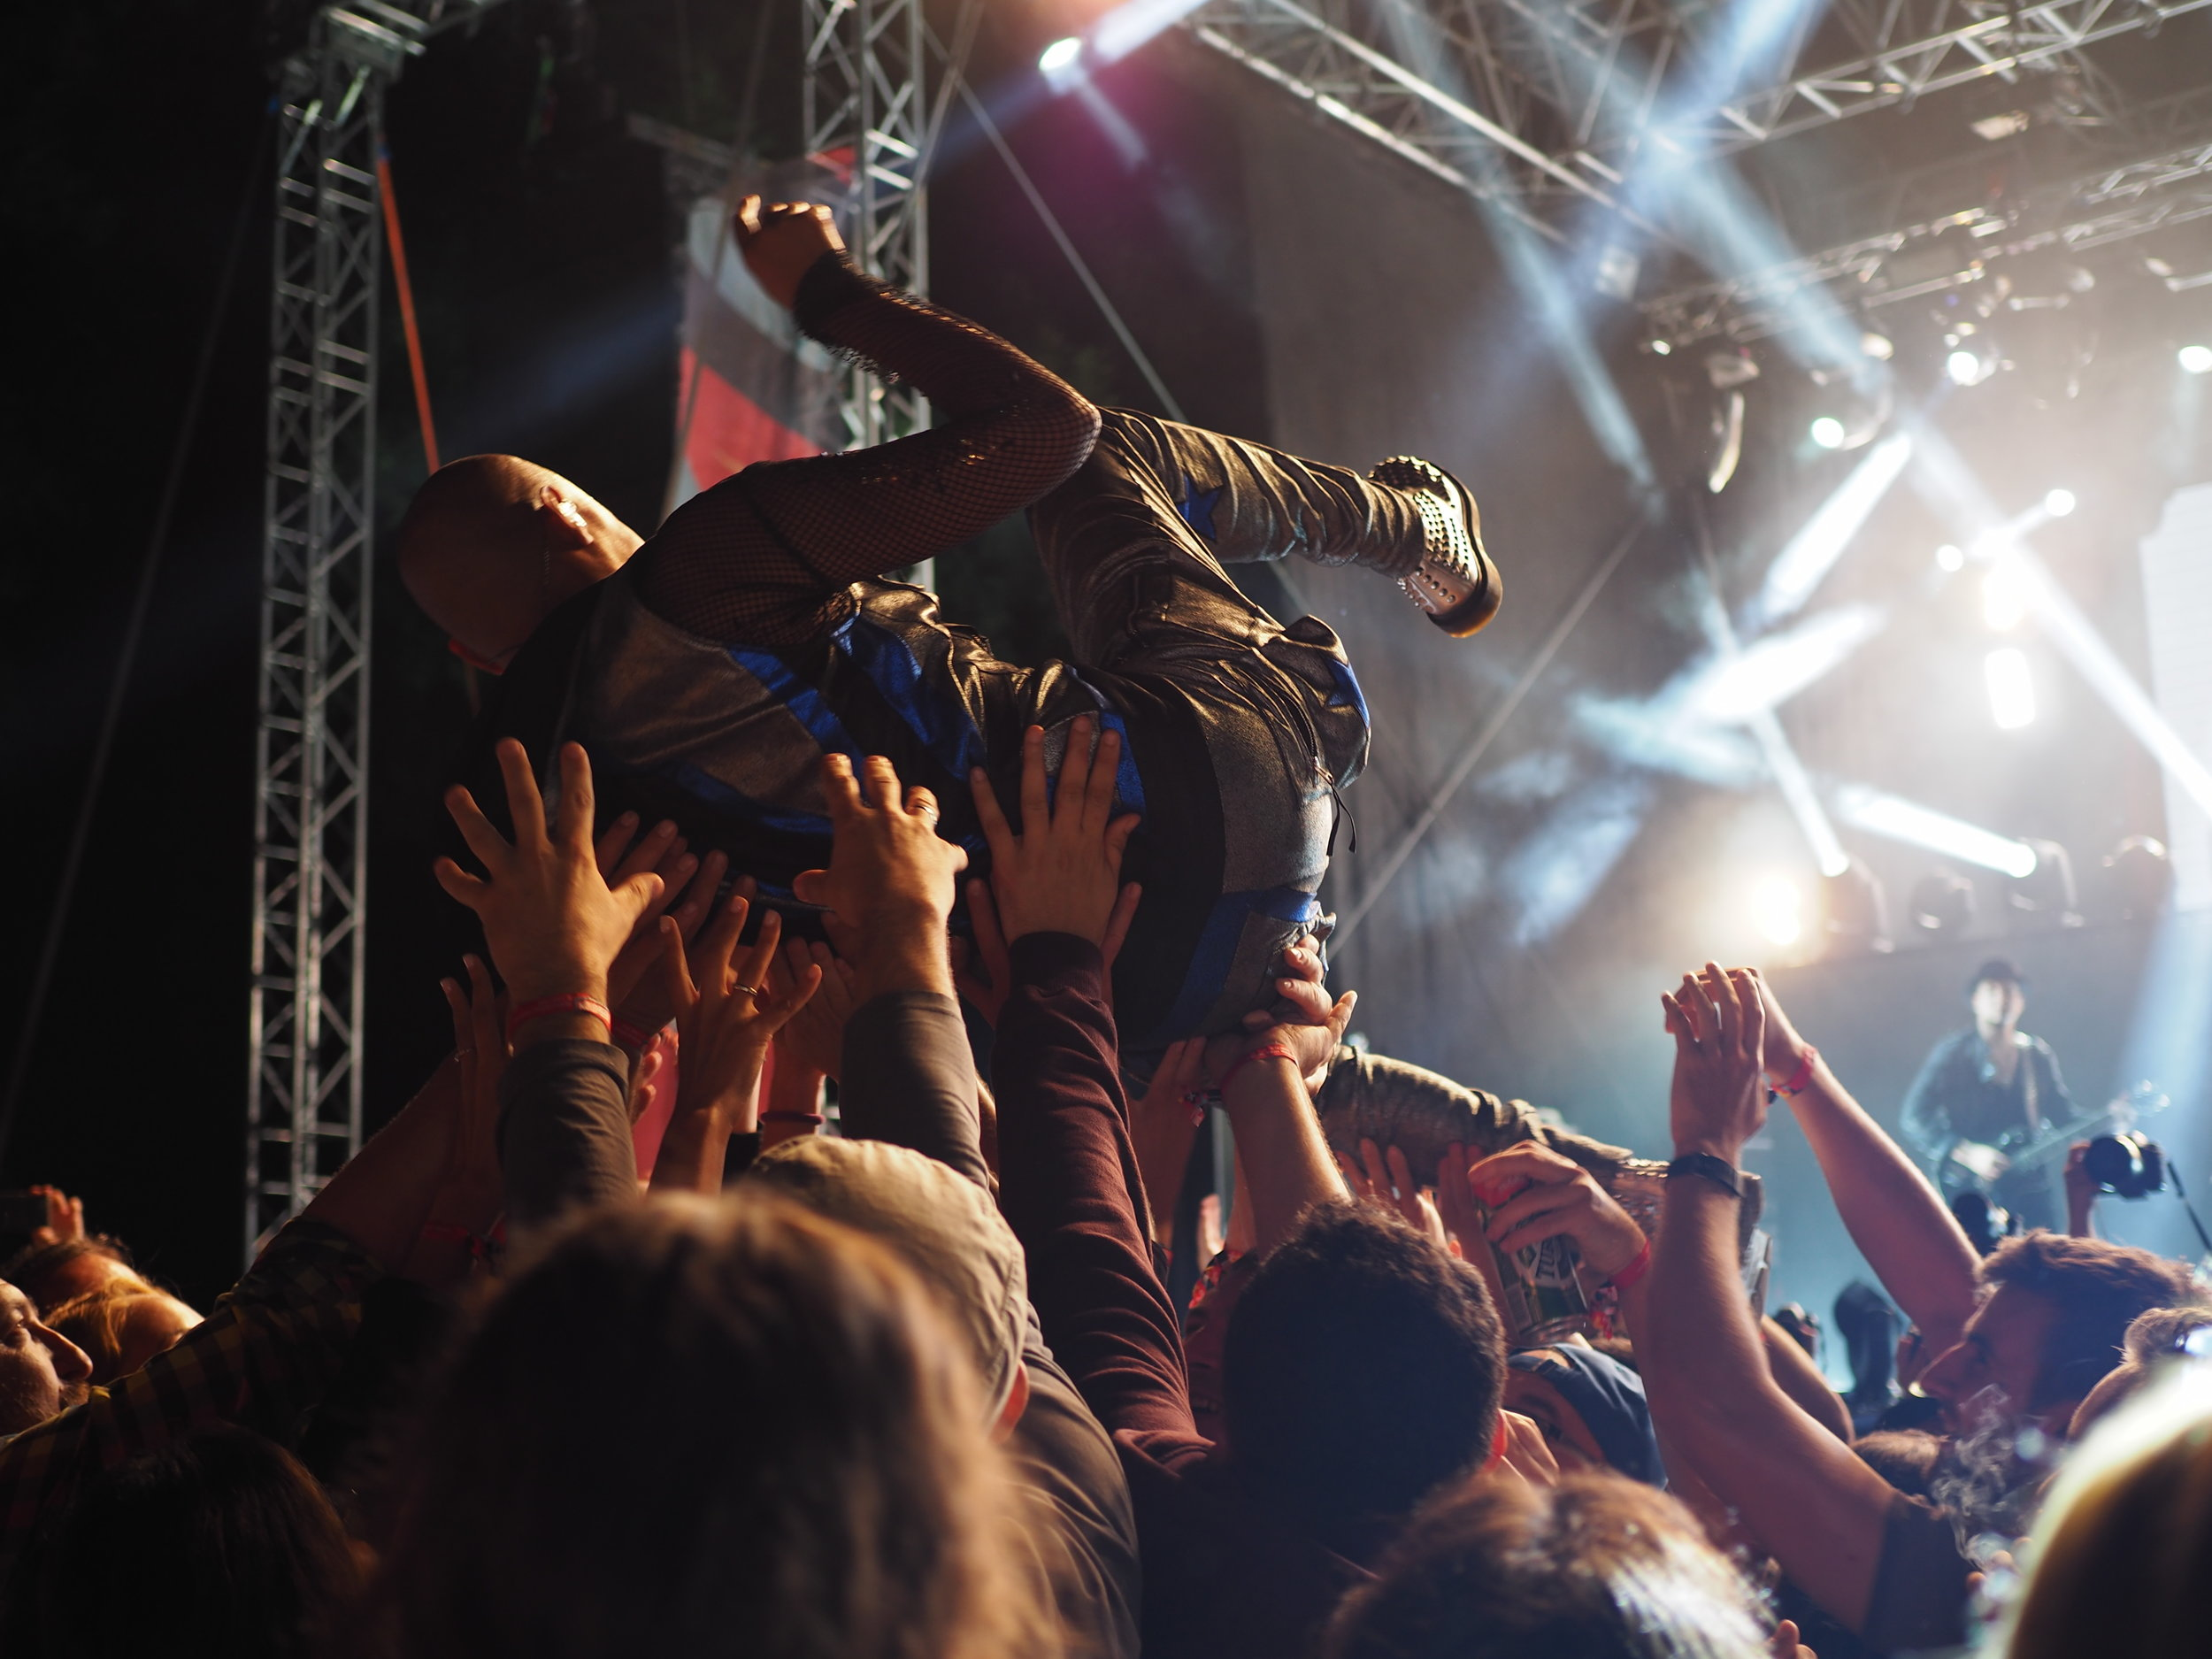 """Booking - More gigs means more chances to make more fans. You got the stage presence now Contact Us Today and """"Lets get your show on the road!""""-Merchandising-Tour management-Research-Routing"""